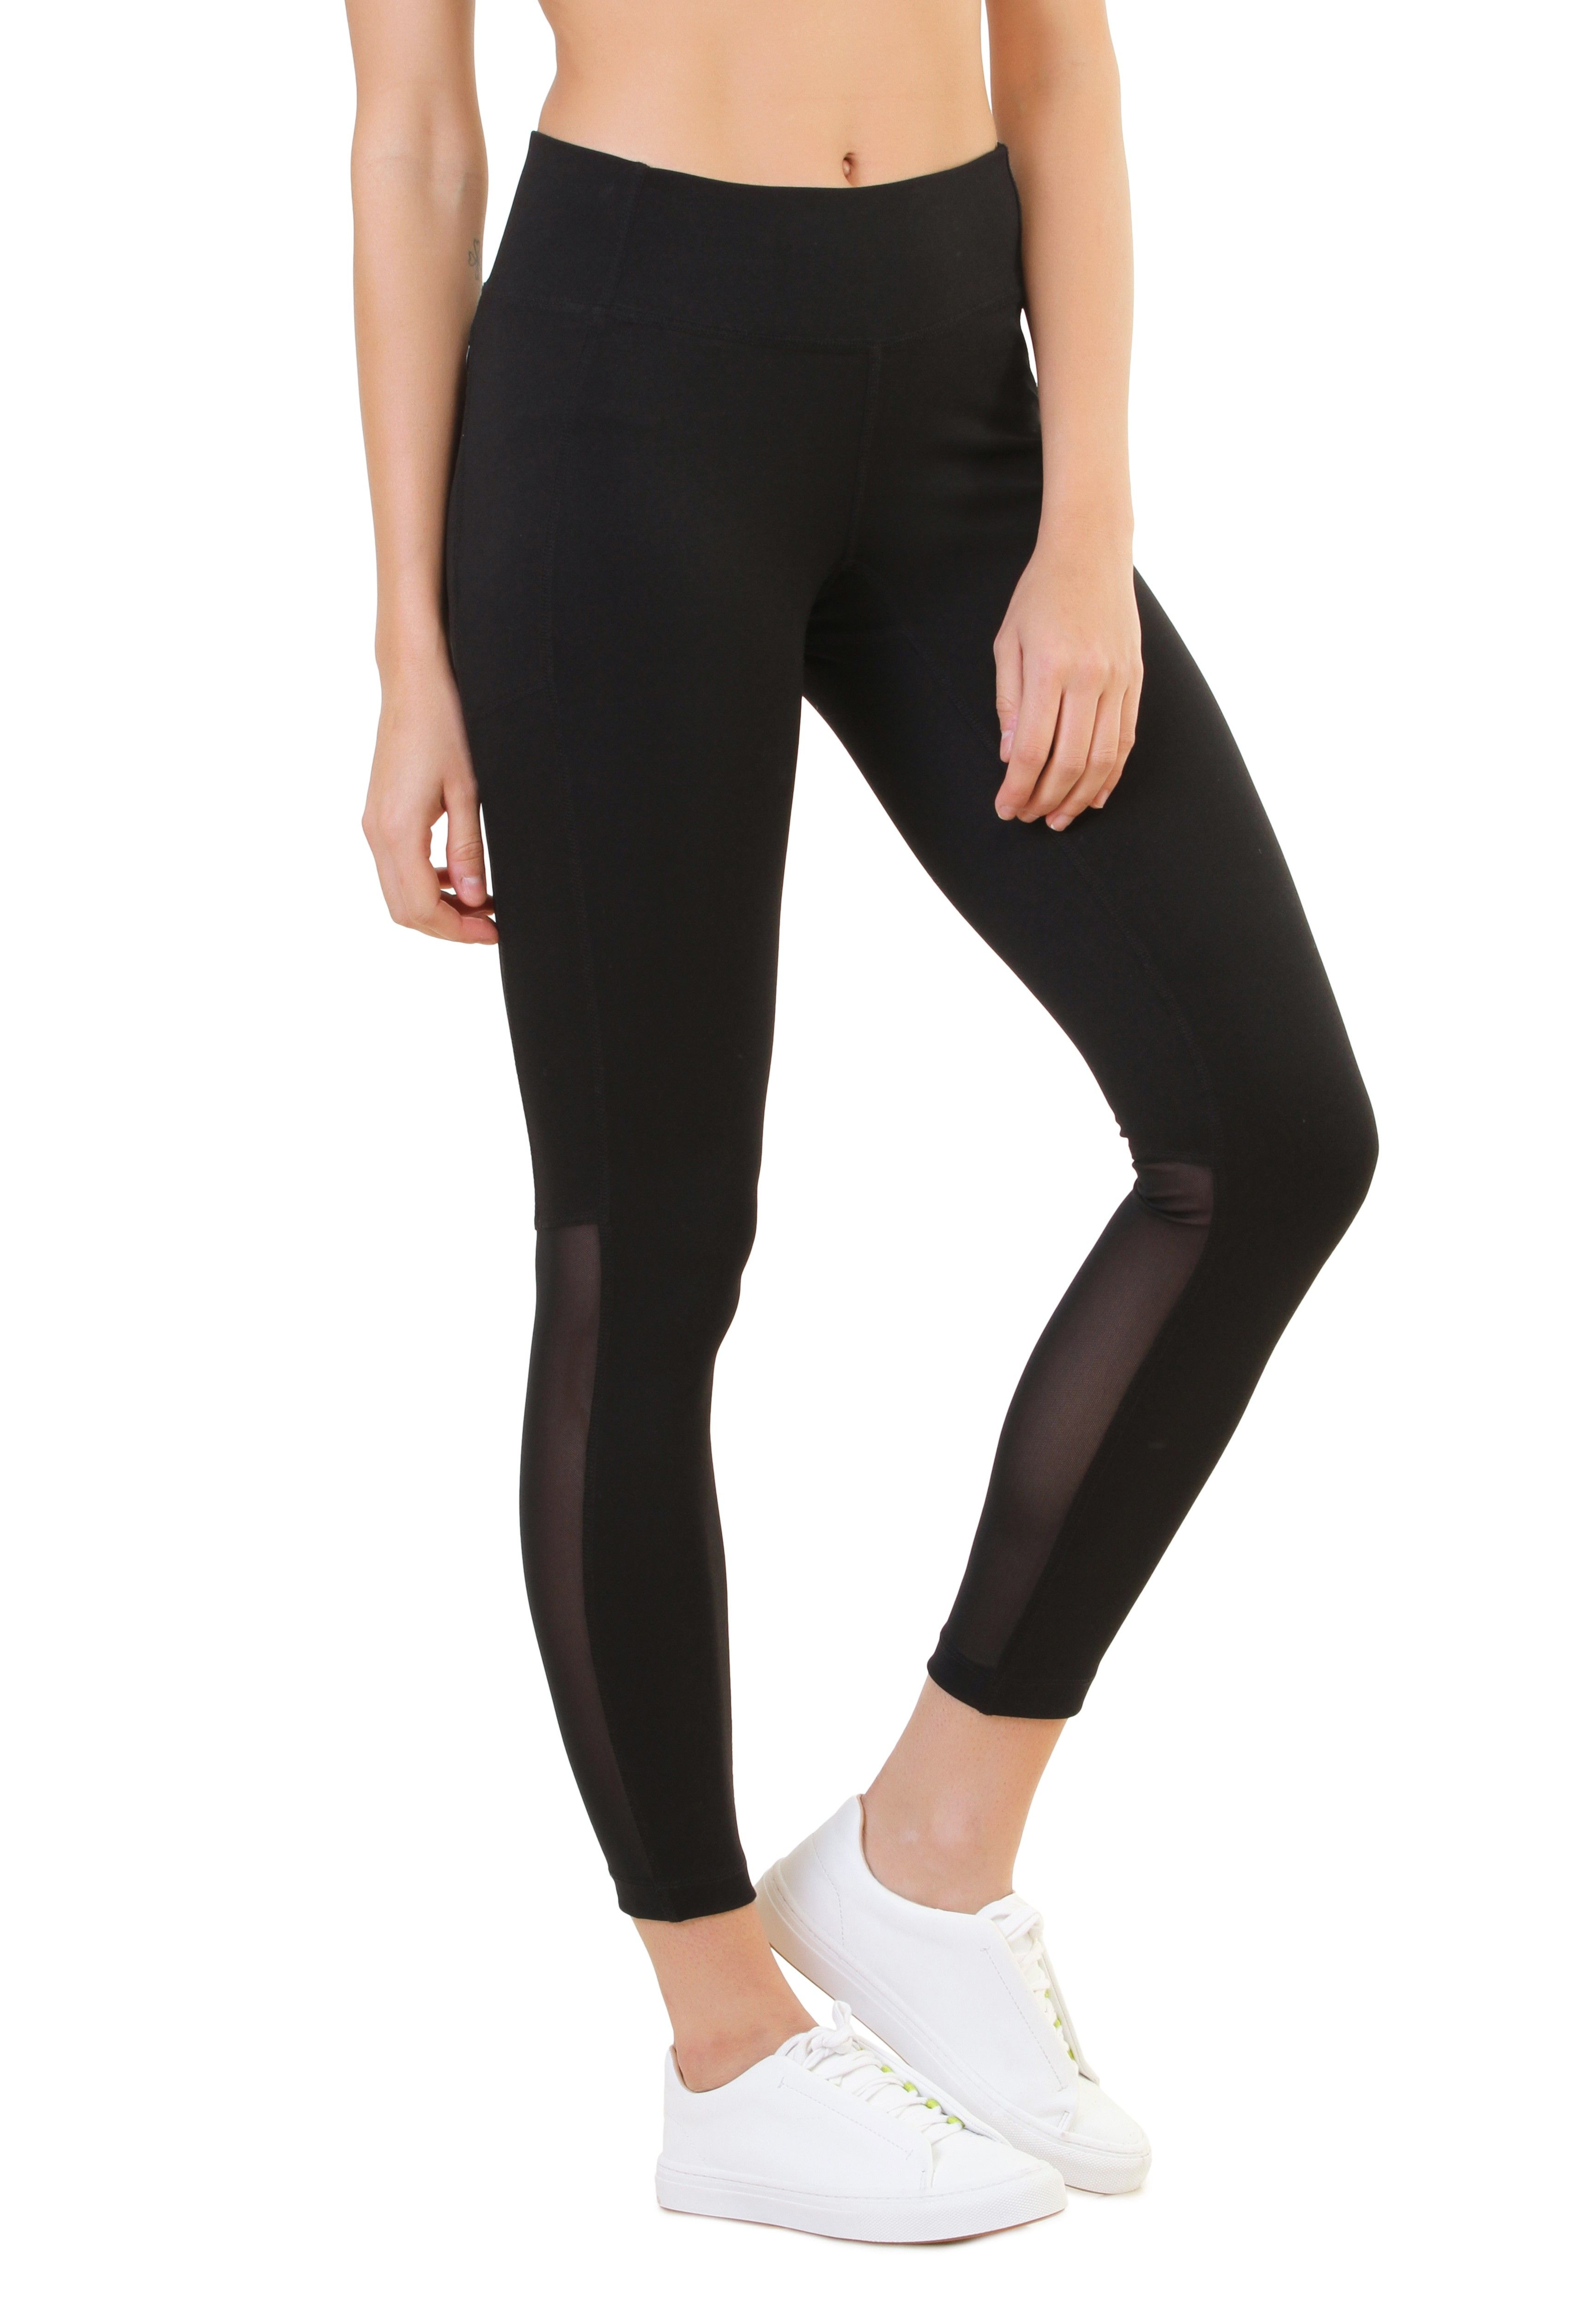 a28c7306fe3ecd Silvertraq Performance Mesh Leggings Mesh Tights for yoga, running, dance  zumba, workout. Shop online India - women gym wear. Mesh side panels. sizes  upto ...